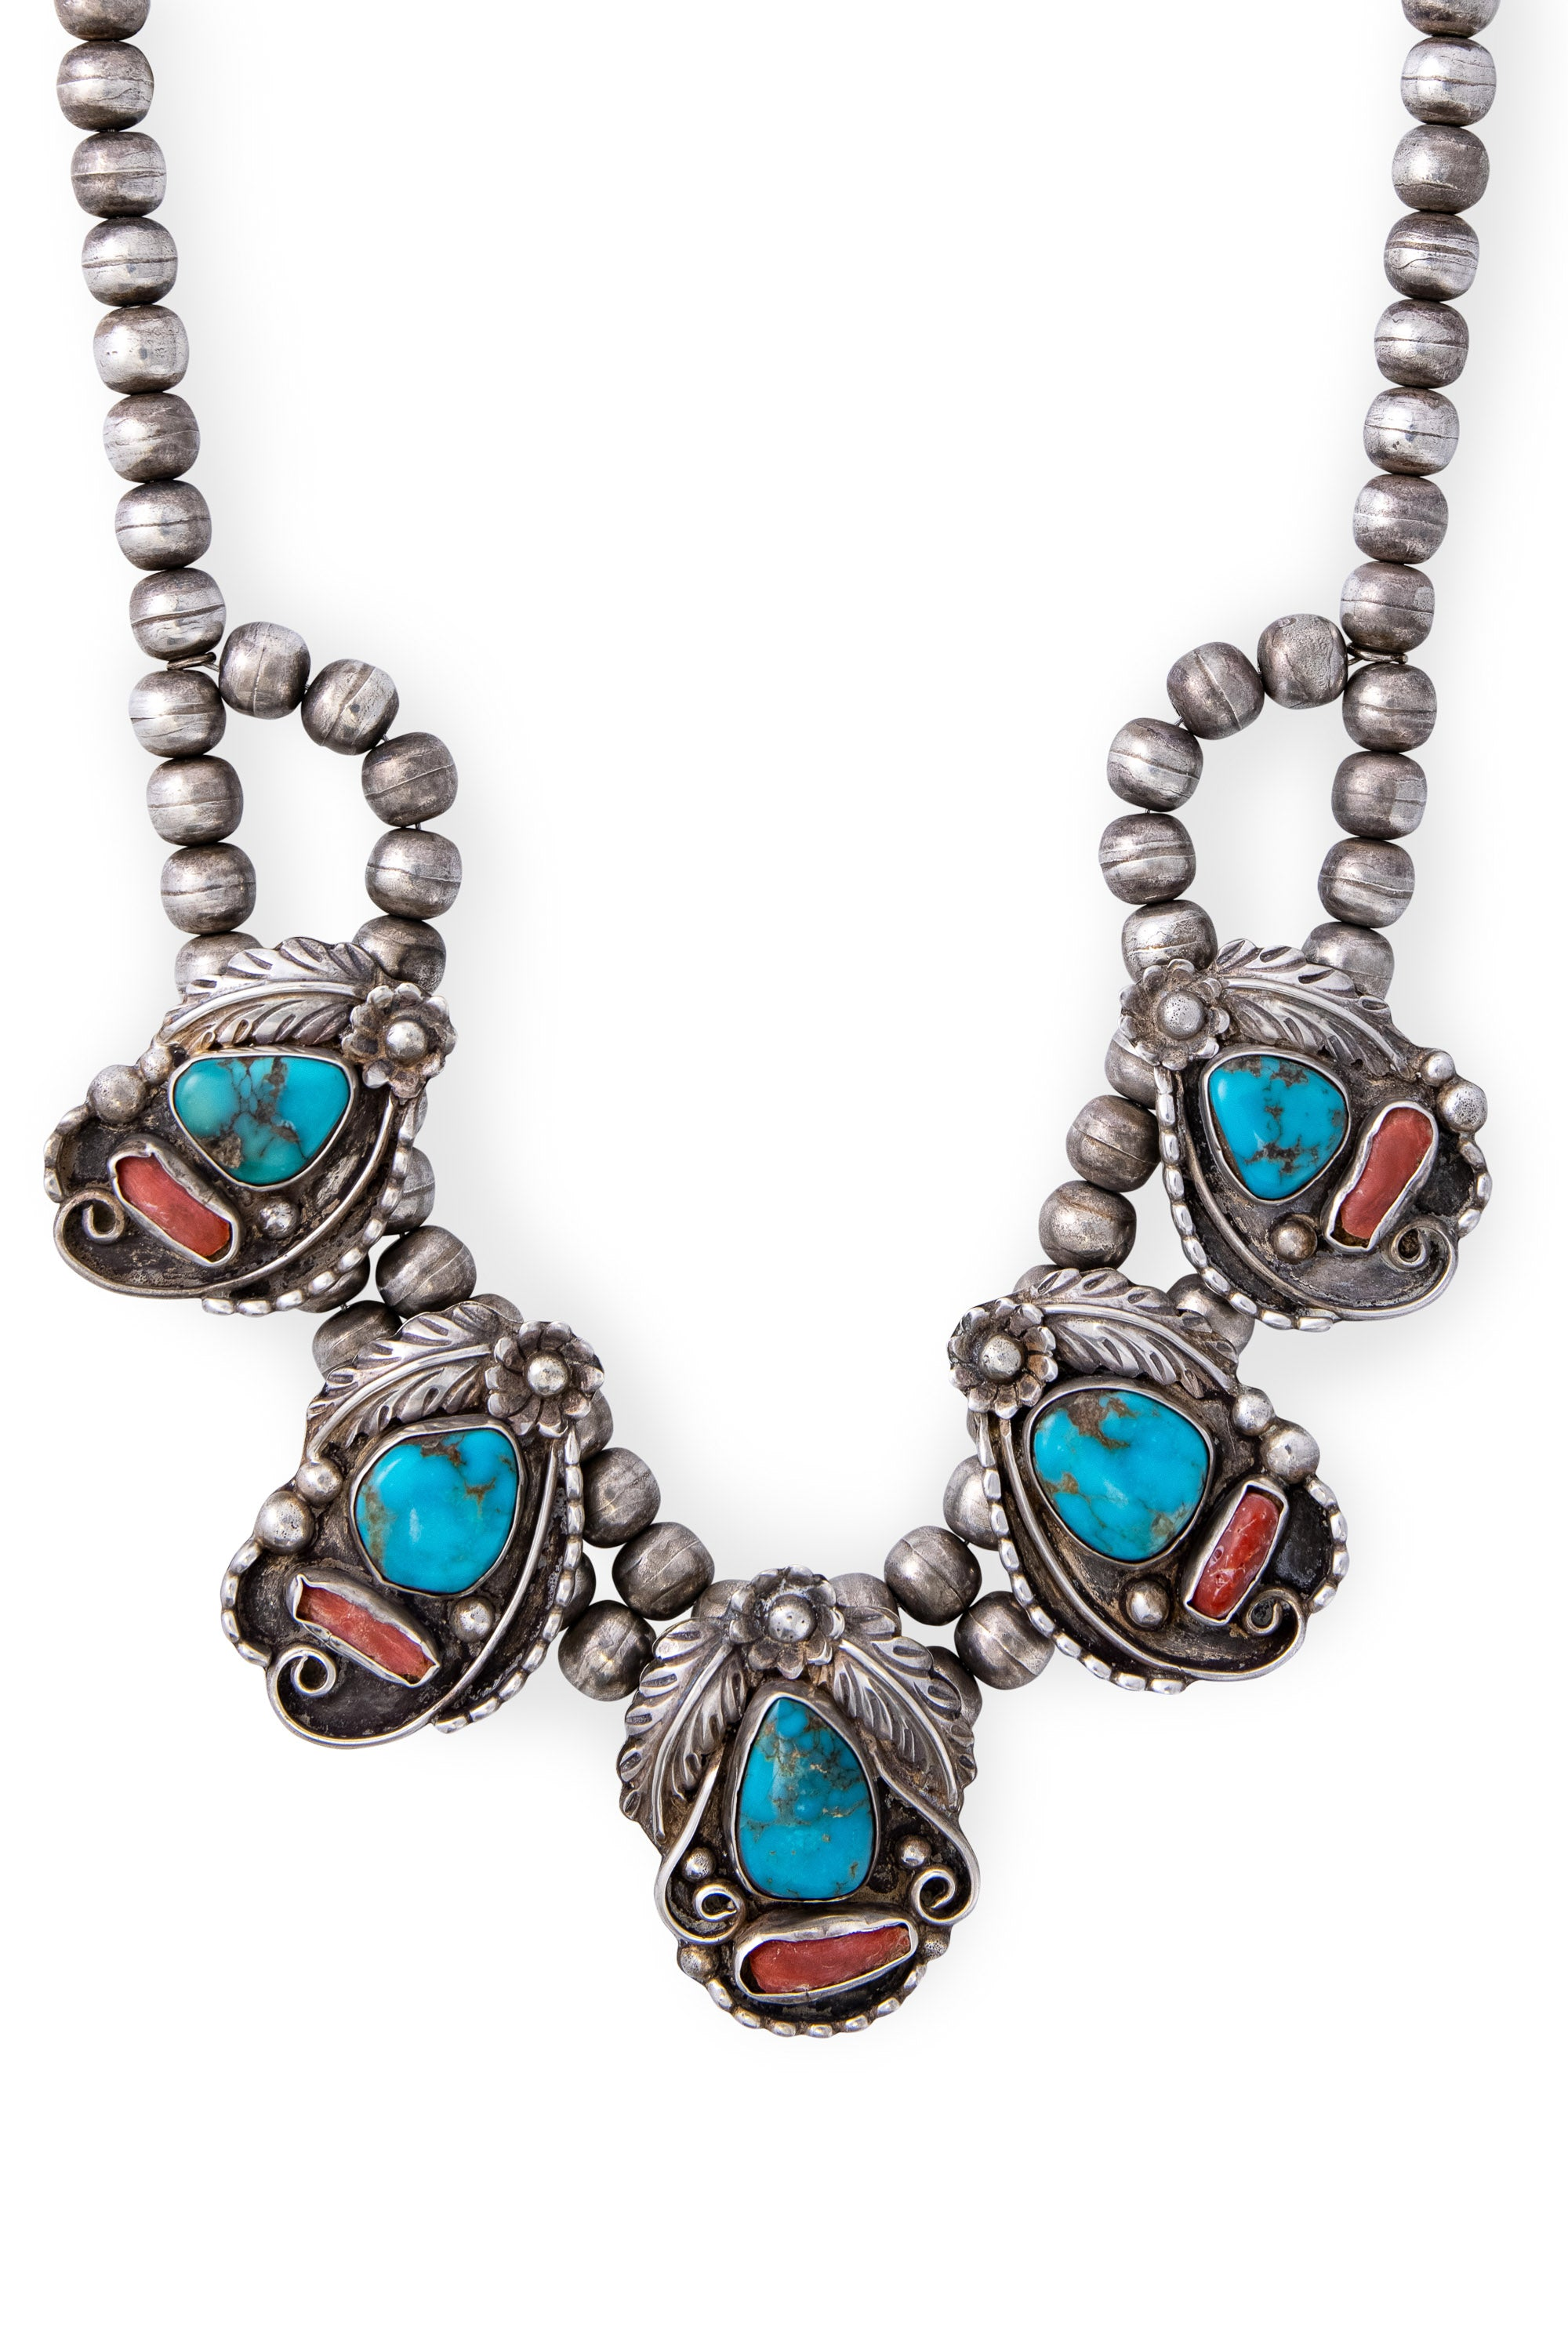 Necklace, Opera, Turquoise & Coral, Hallmark, Vintage, 1109